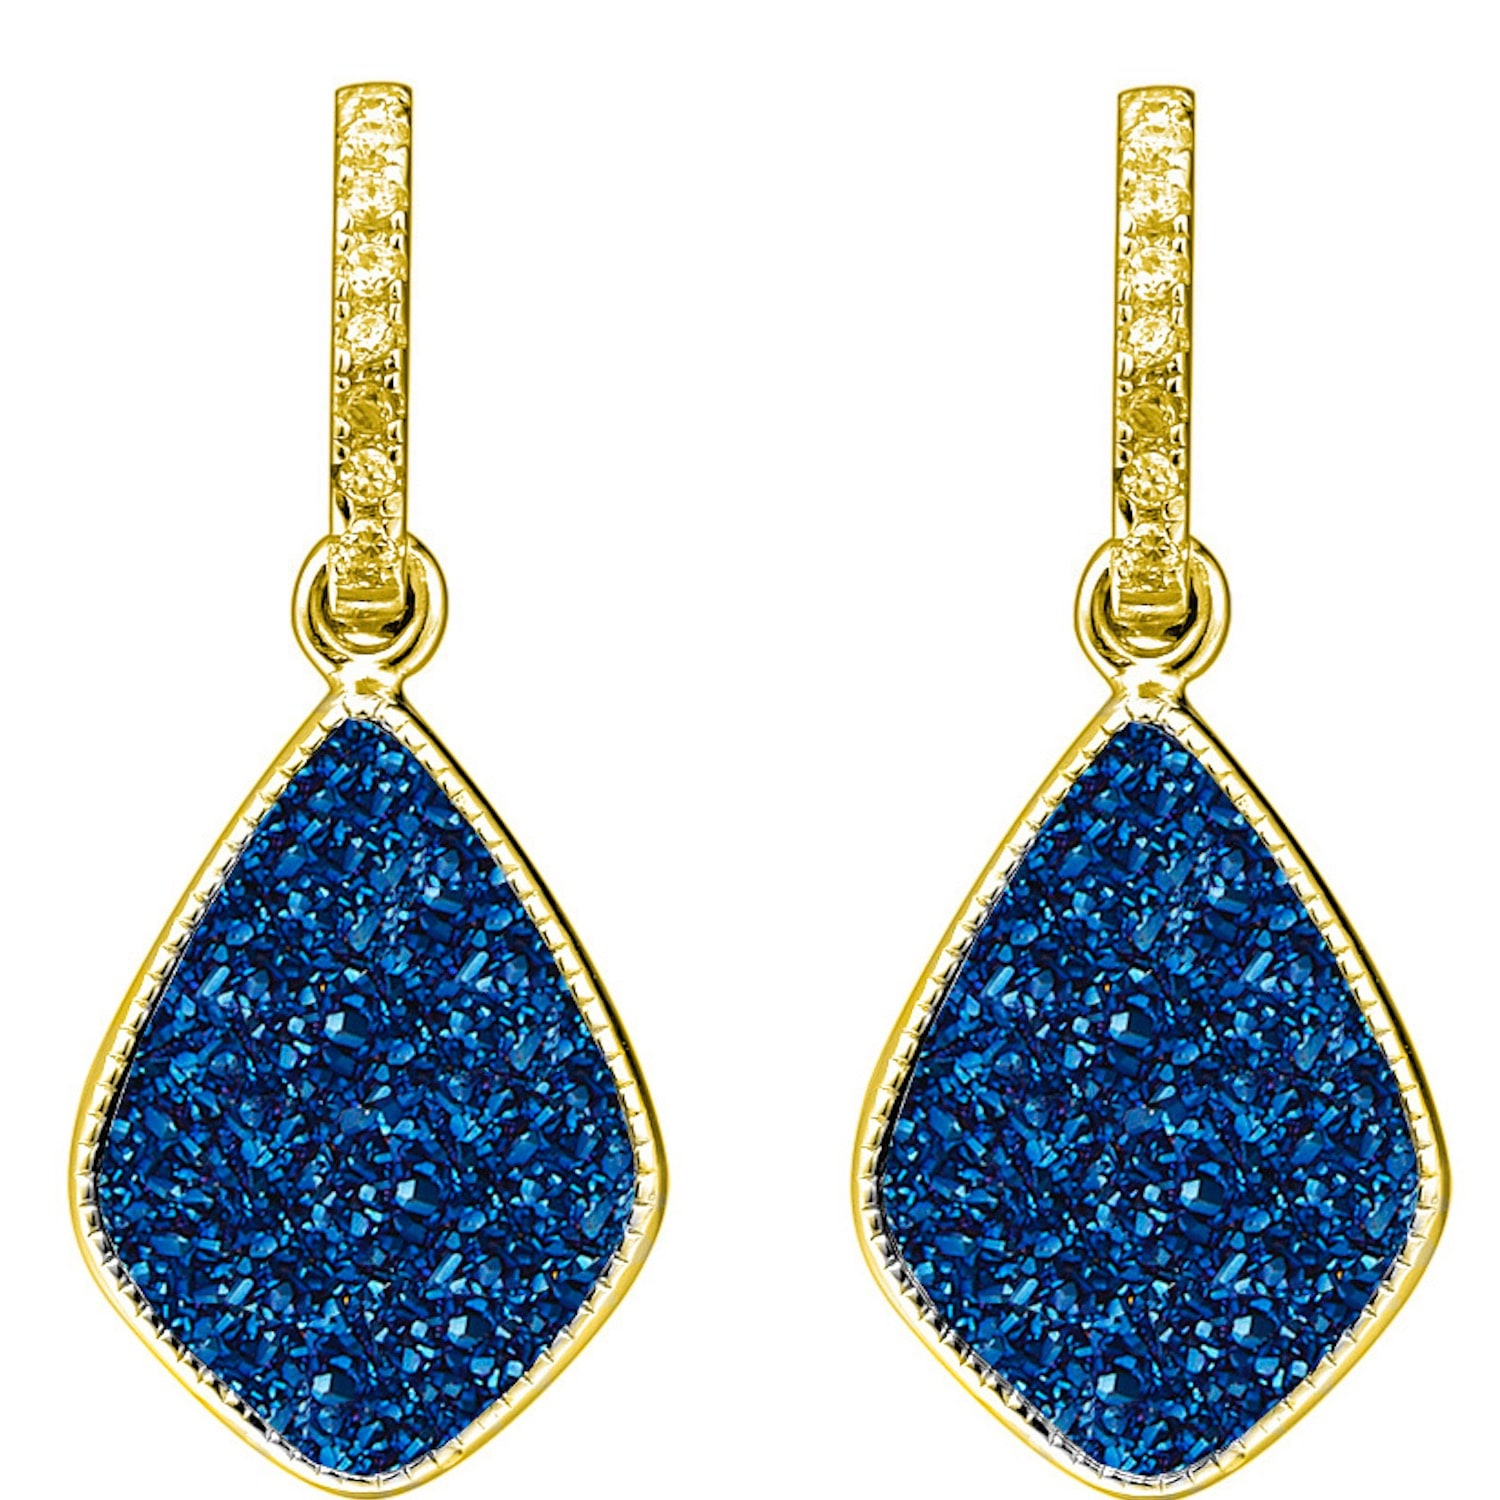 Elara's Blue Star Earrings